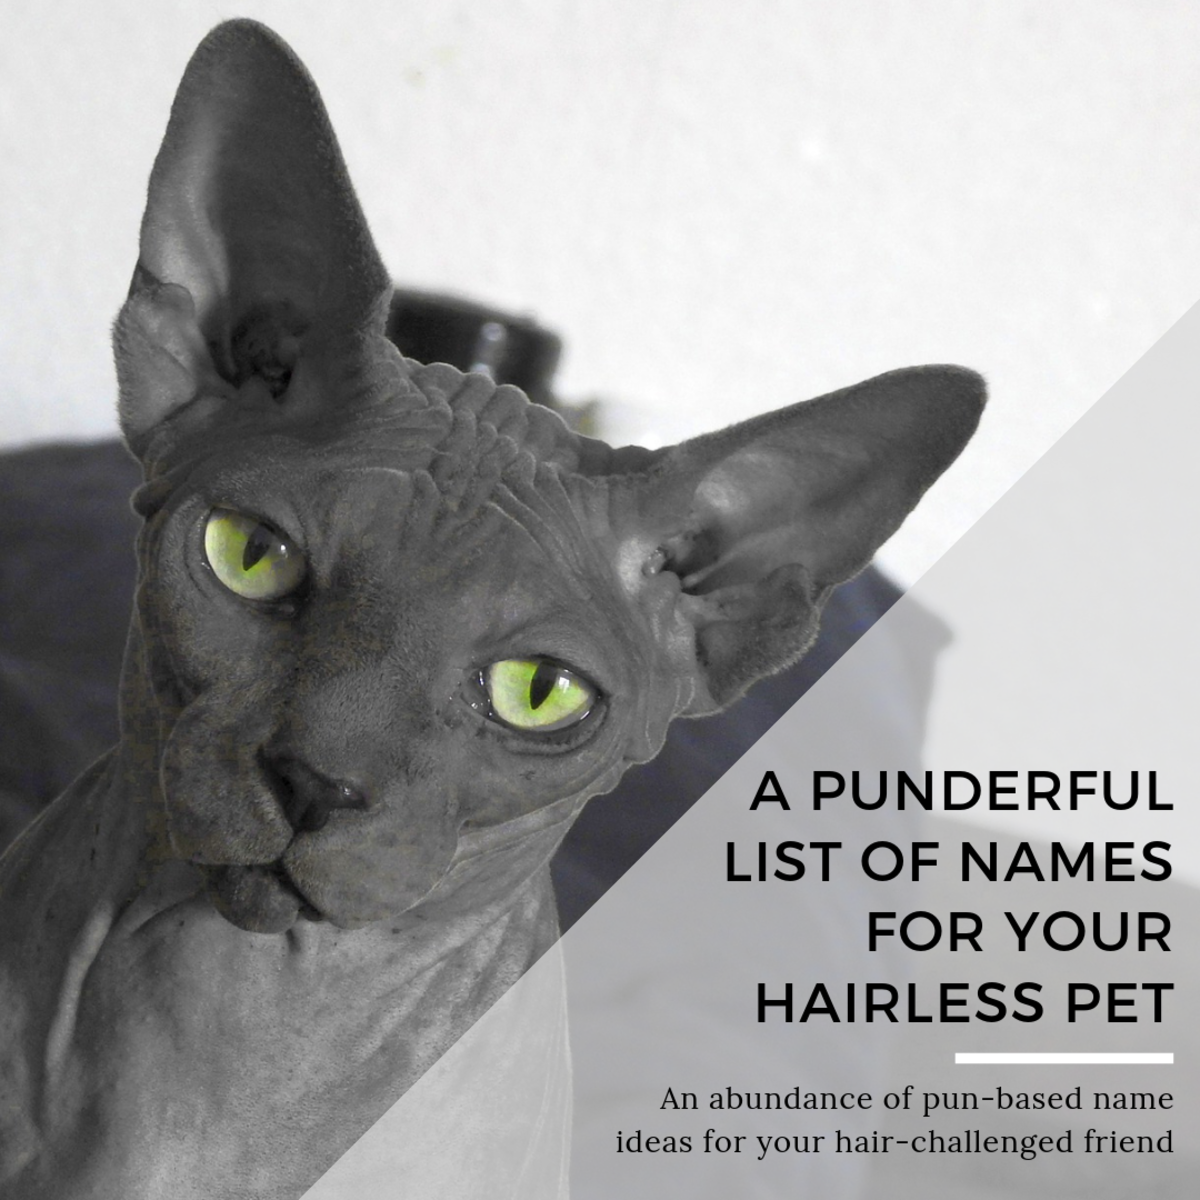 Punderful Names for Hairless Pets | PetHelpful